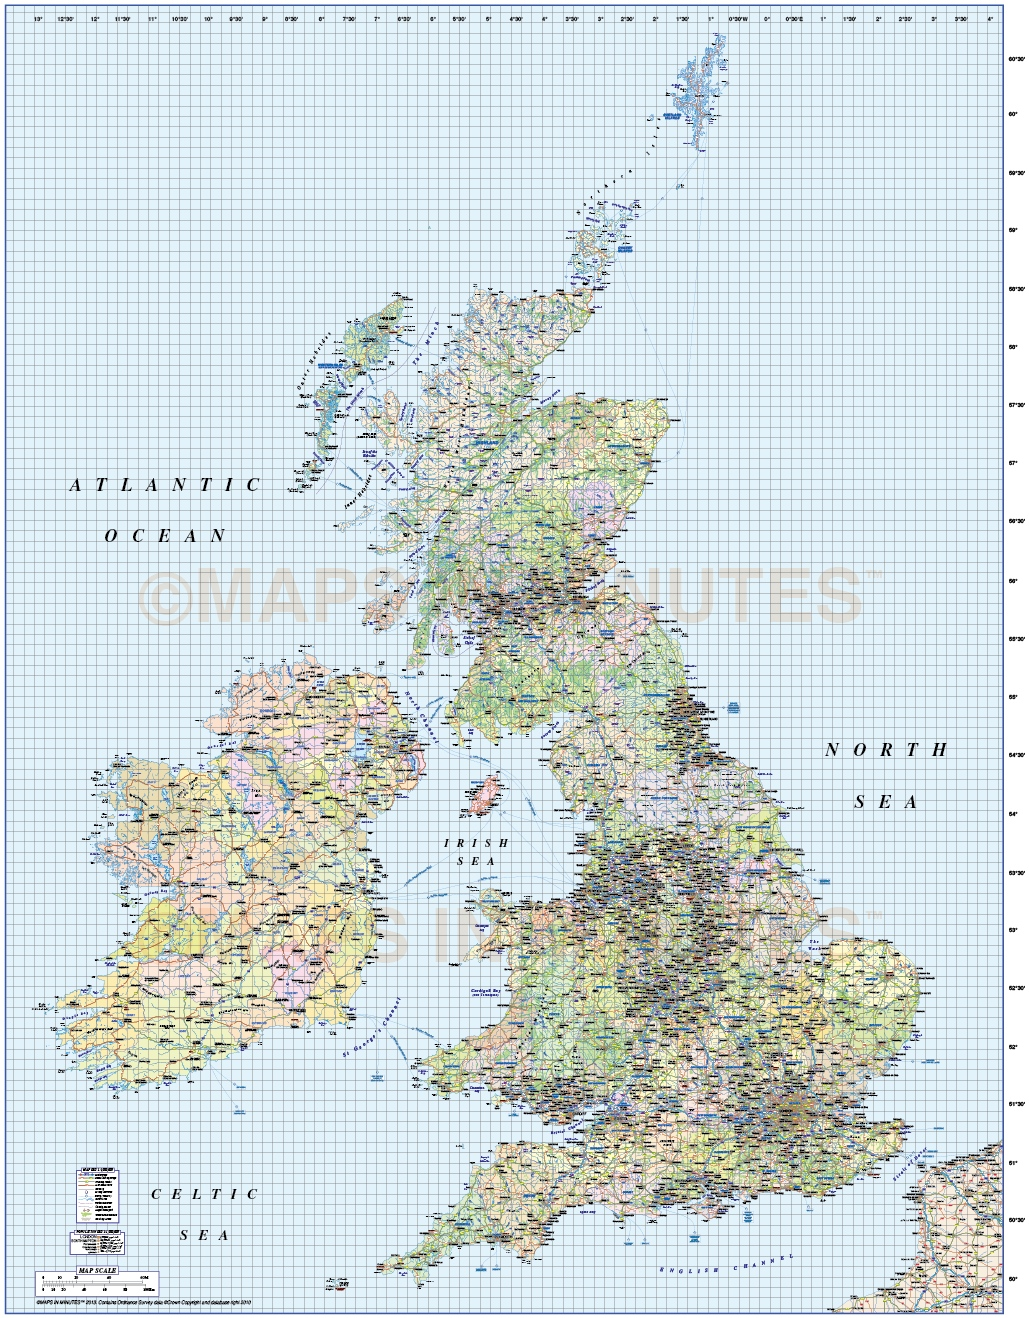 british isles UK county road and rail map 1m scale in – Map Uk Roads